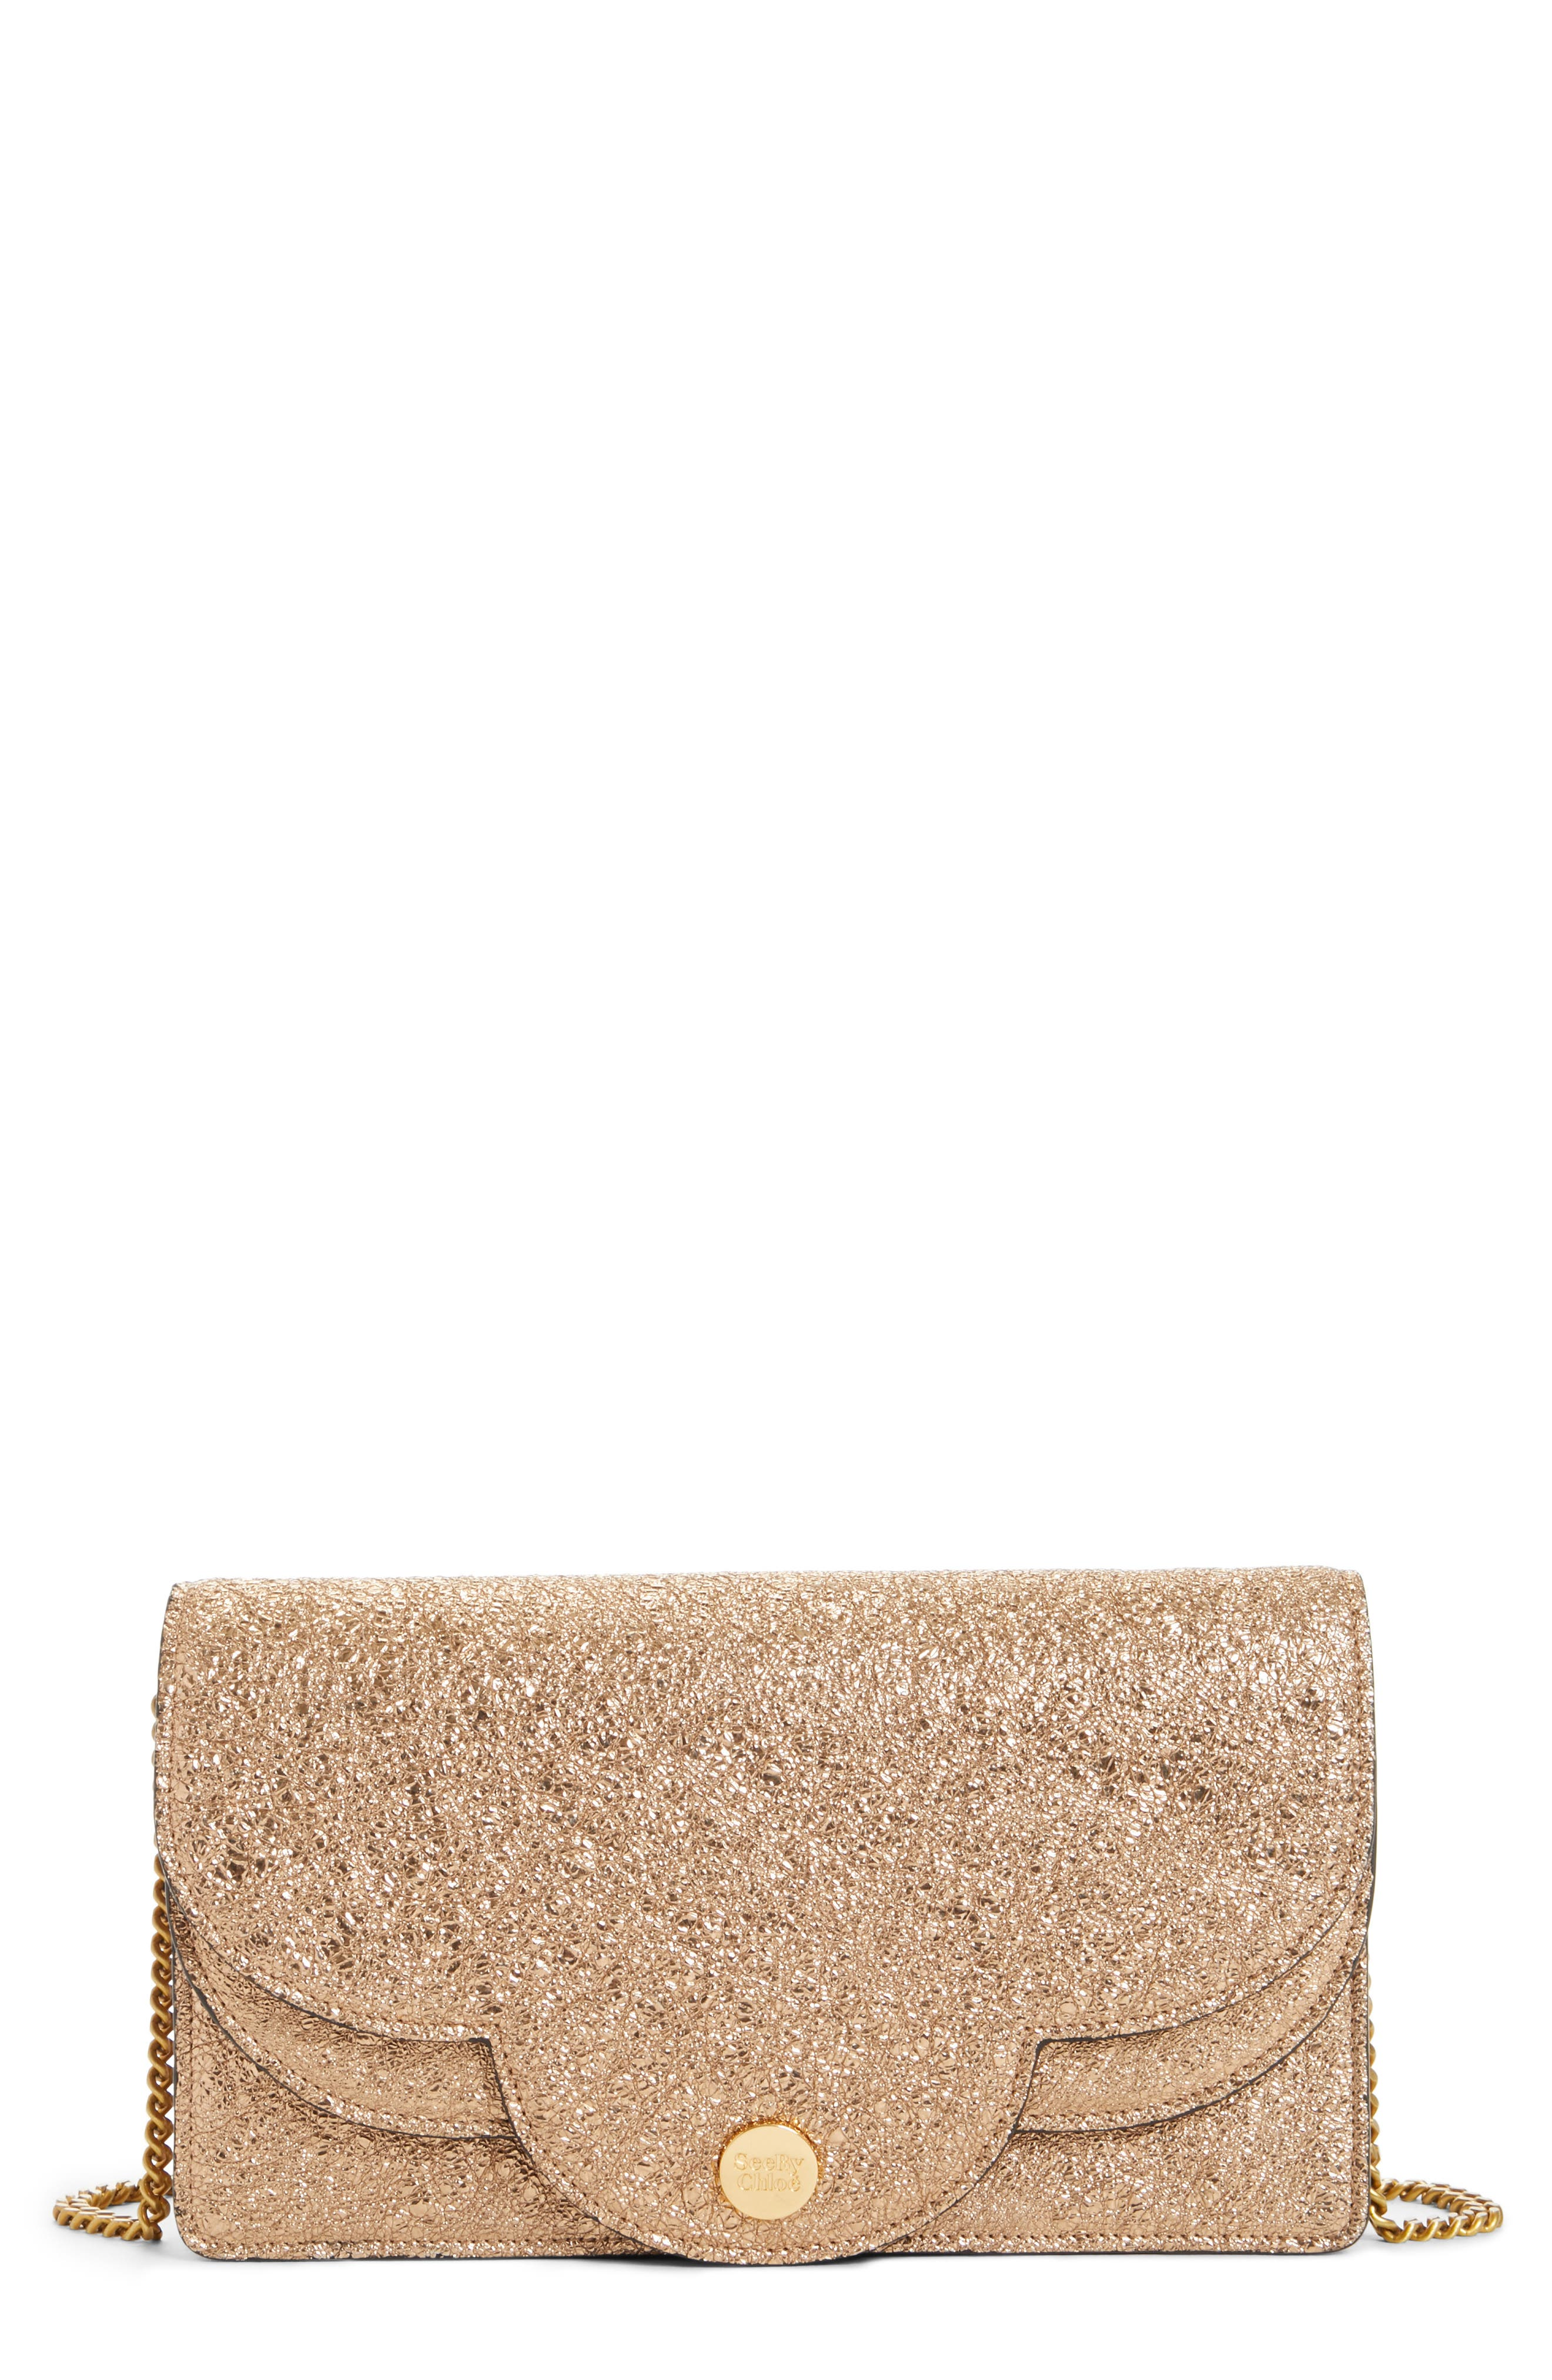 SEE BY CHLOÉ,                             Polina Metallic Leather Crossbody Clutch,                             Main thumbnail 1, color,                             220